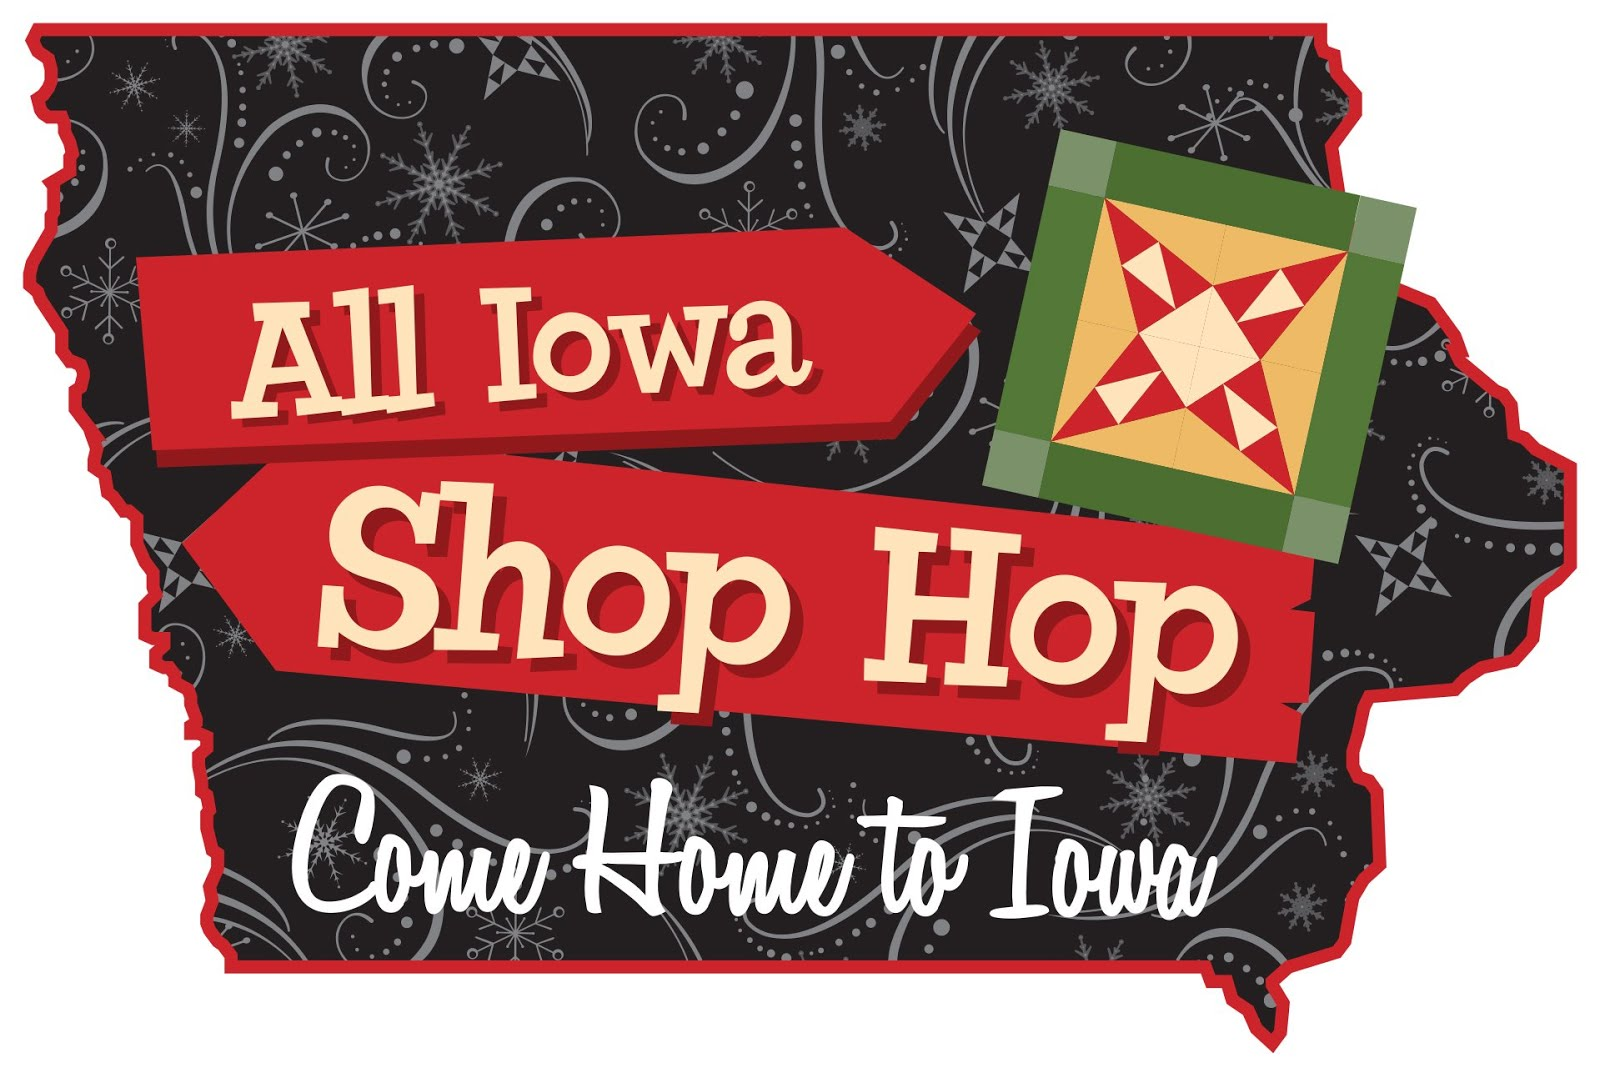 All Iowa Shop Hop 2016